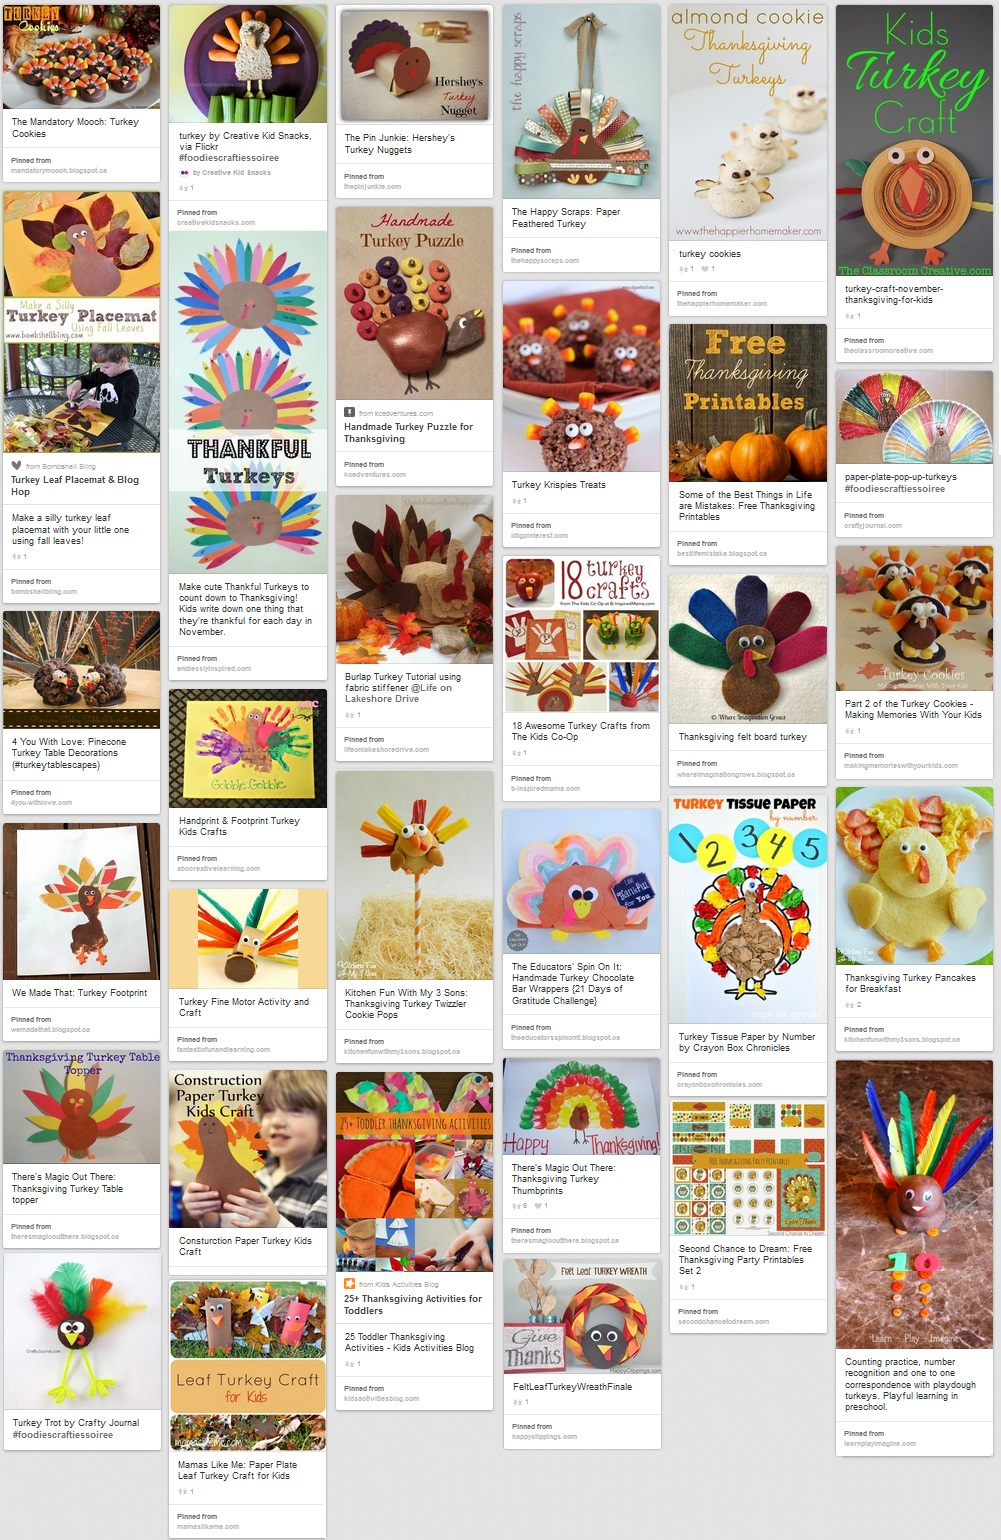 35 awesome Thanksgiving turkey crafts - Thanksgiving foods and crafts Pinterest board